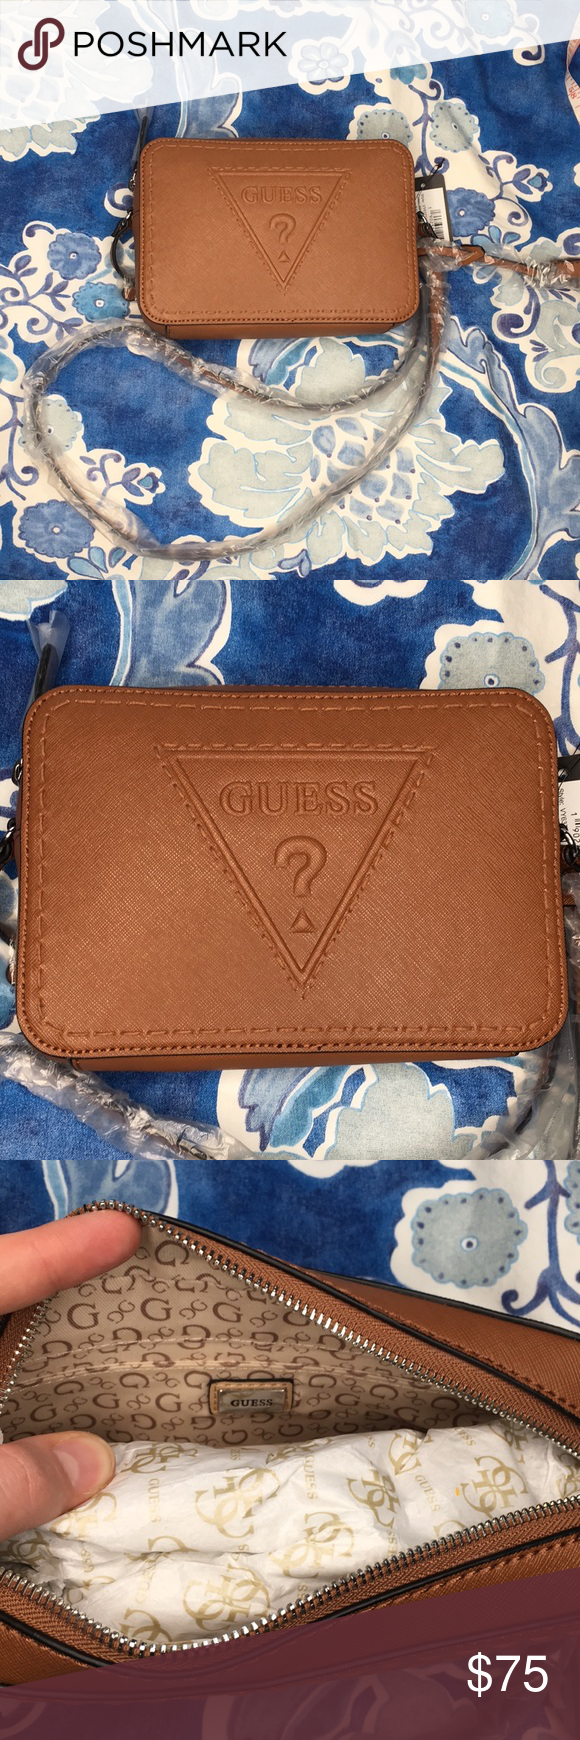 8f7db57b4c3c Guess Baldwin Park embossed whiskey crossbody bag Beautiful structured tan  brown color Embossed guess triangle Long adjustable strap Card and zippered  ...